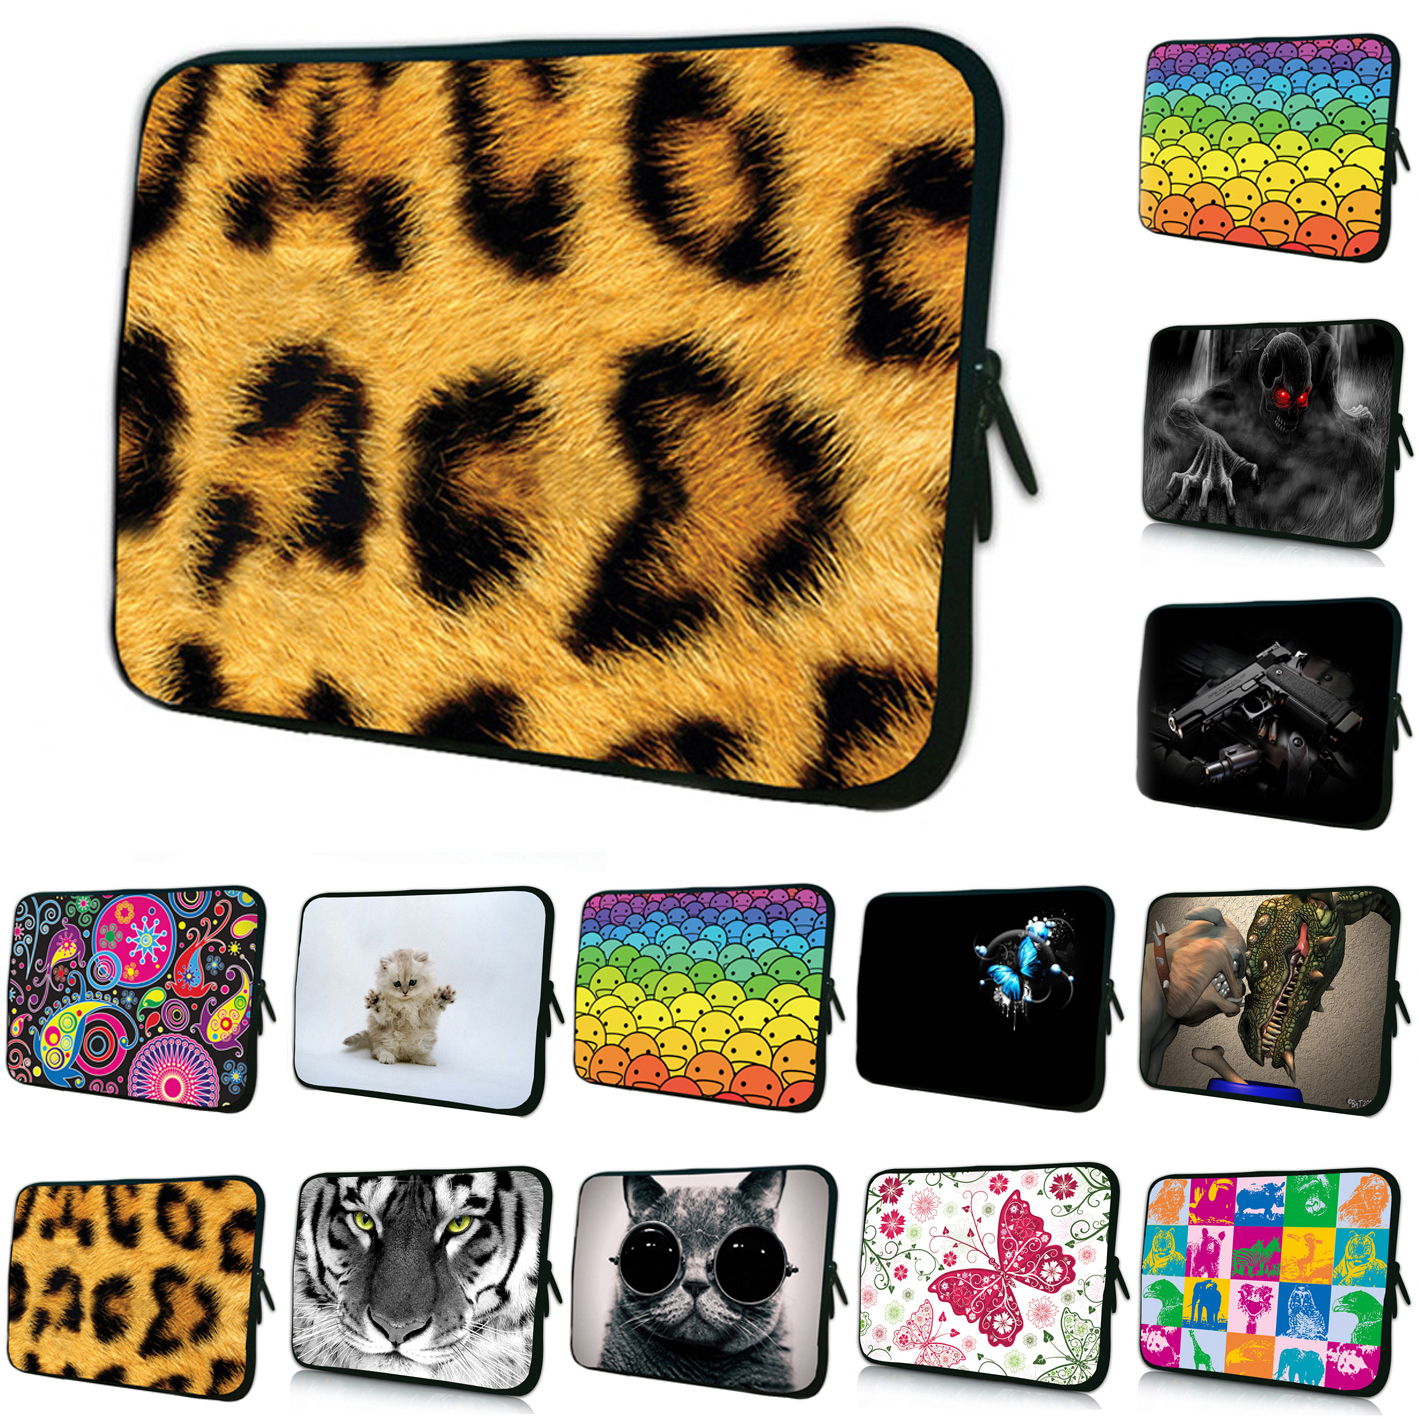 16 17 Notebook Computer Shell Inner Bag Cases For Apple Macbook Dell Alienware M17x 16.8 17.4 17.3 Laptop Pouch Cover Bags